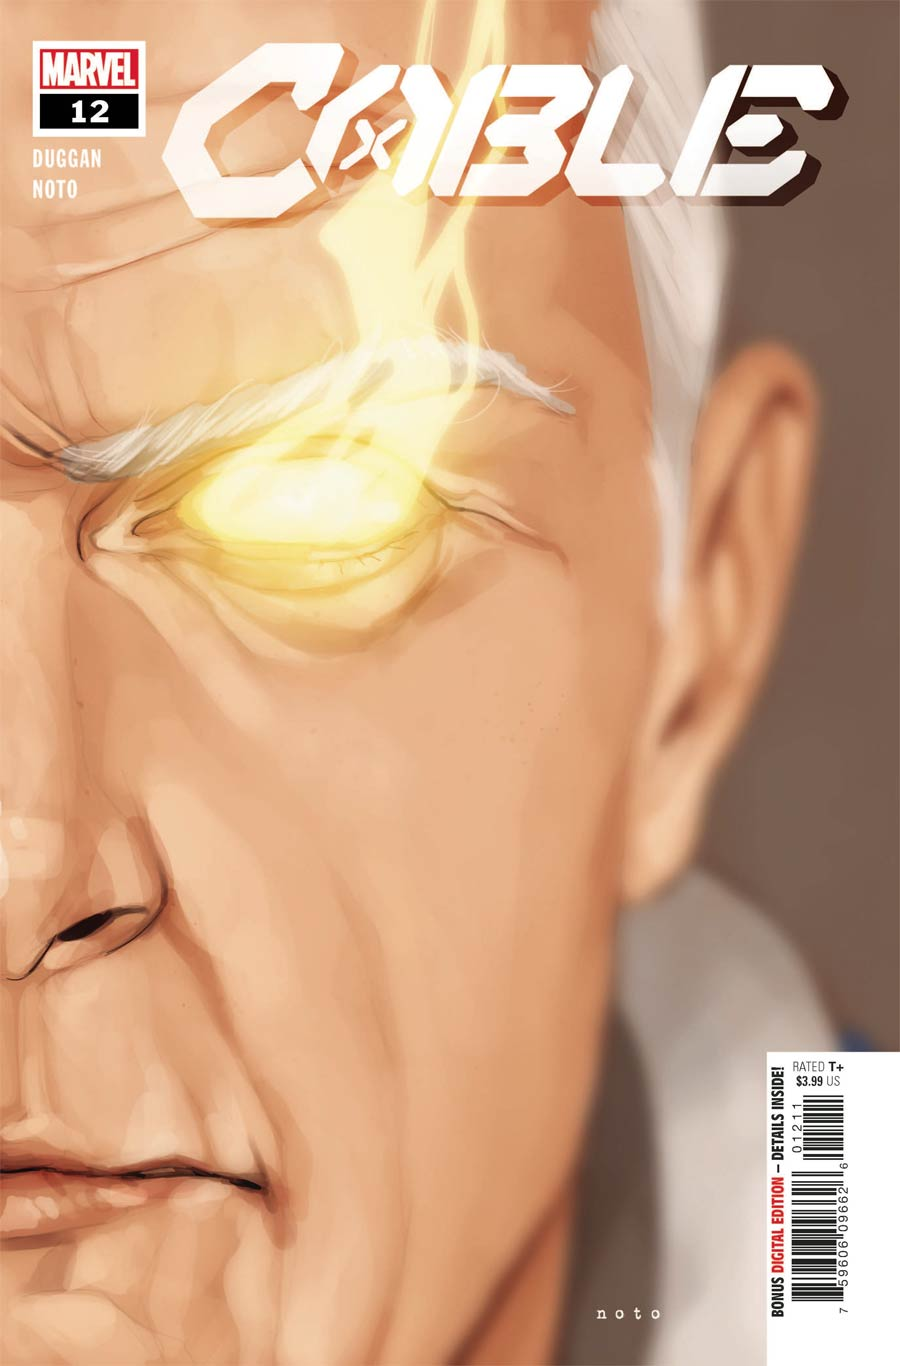 Cable Vol 4 #12 Cover A Regular Phil Noto Cover